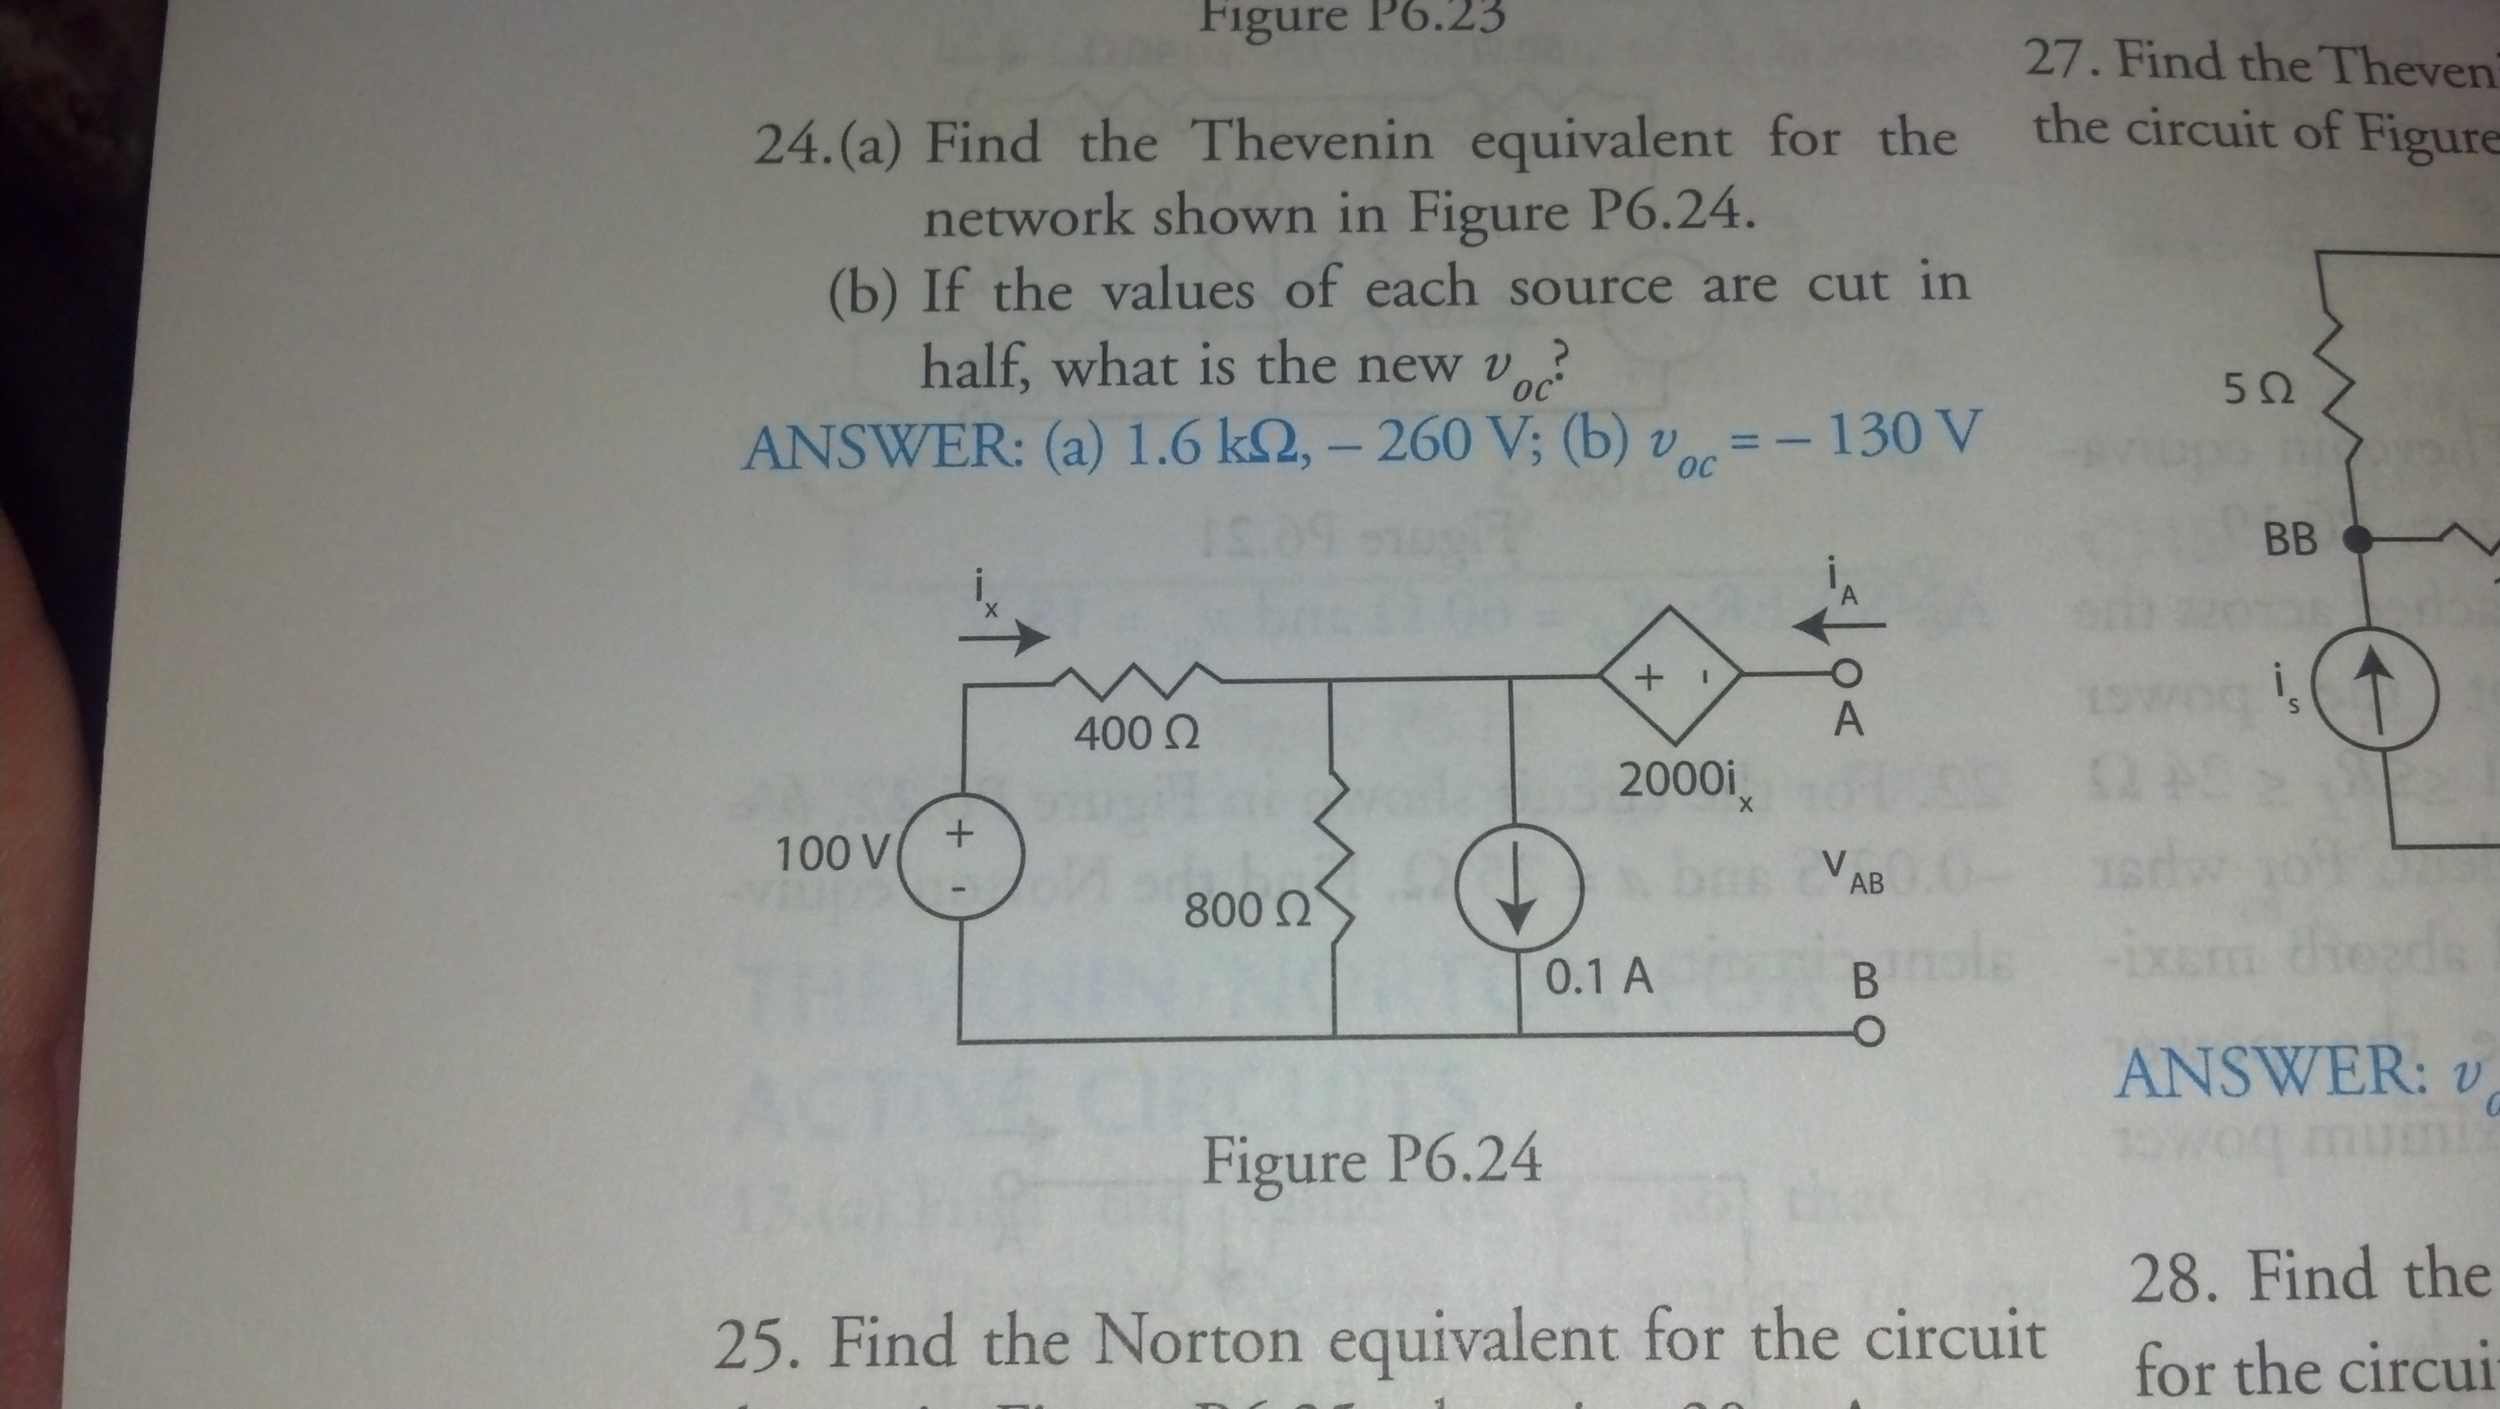 Find the Thevenin equivalent for the network shown